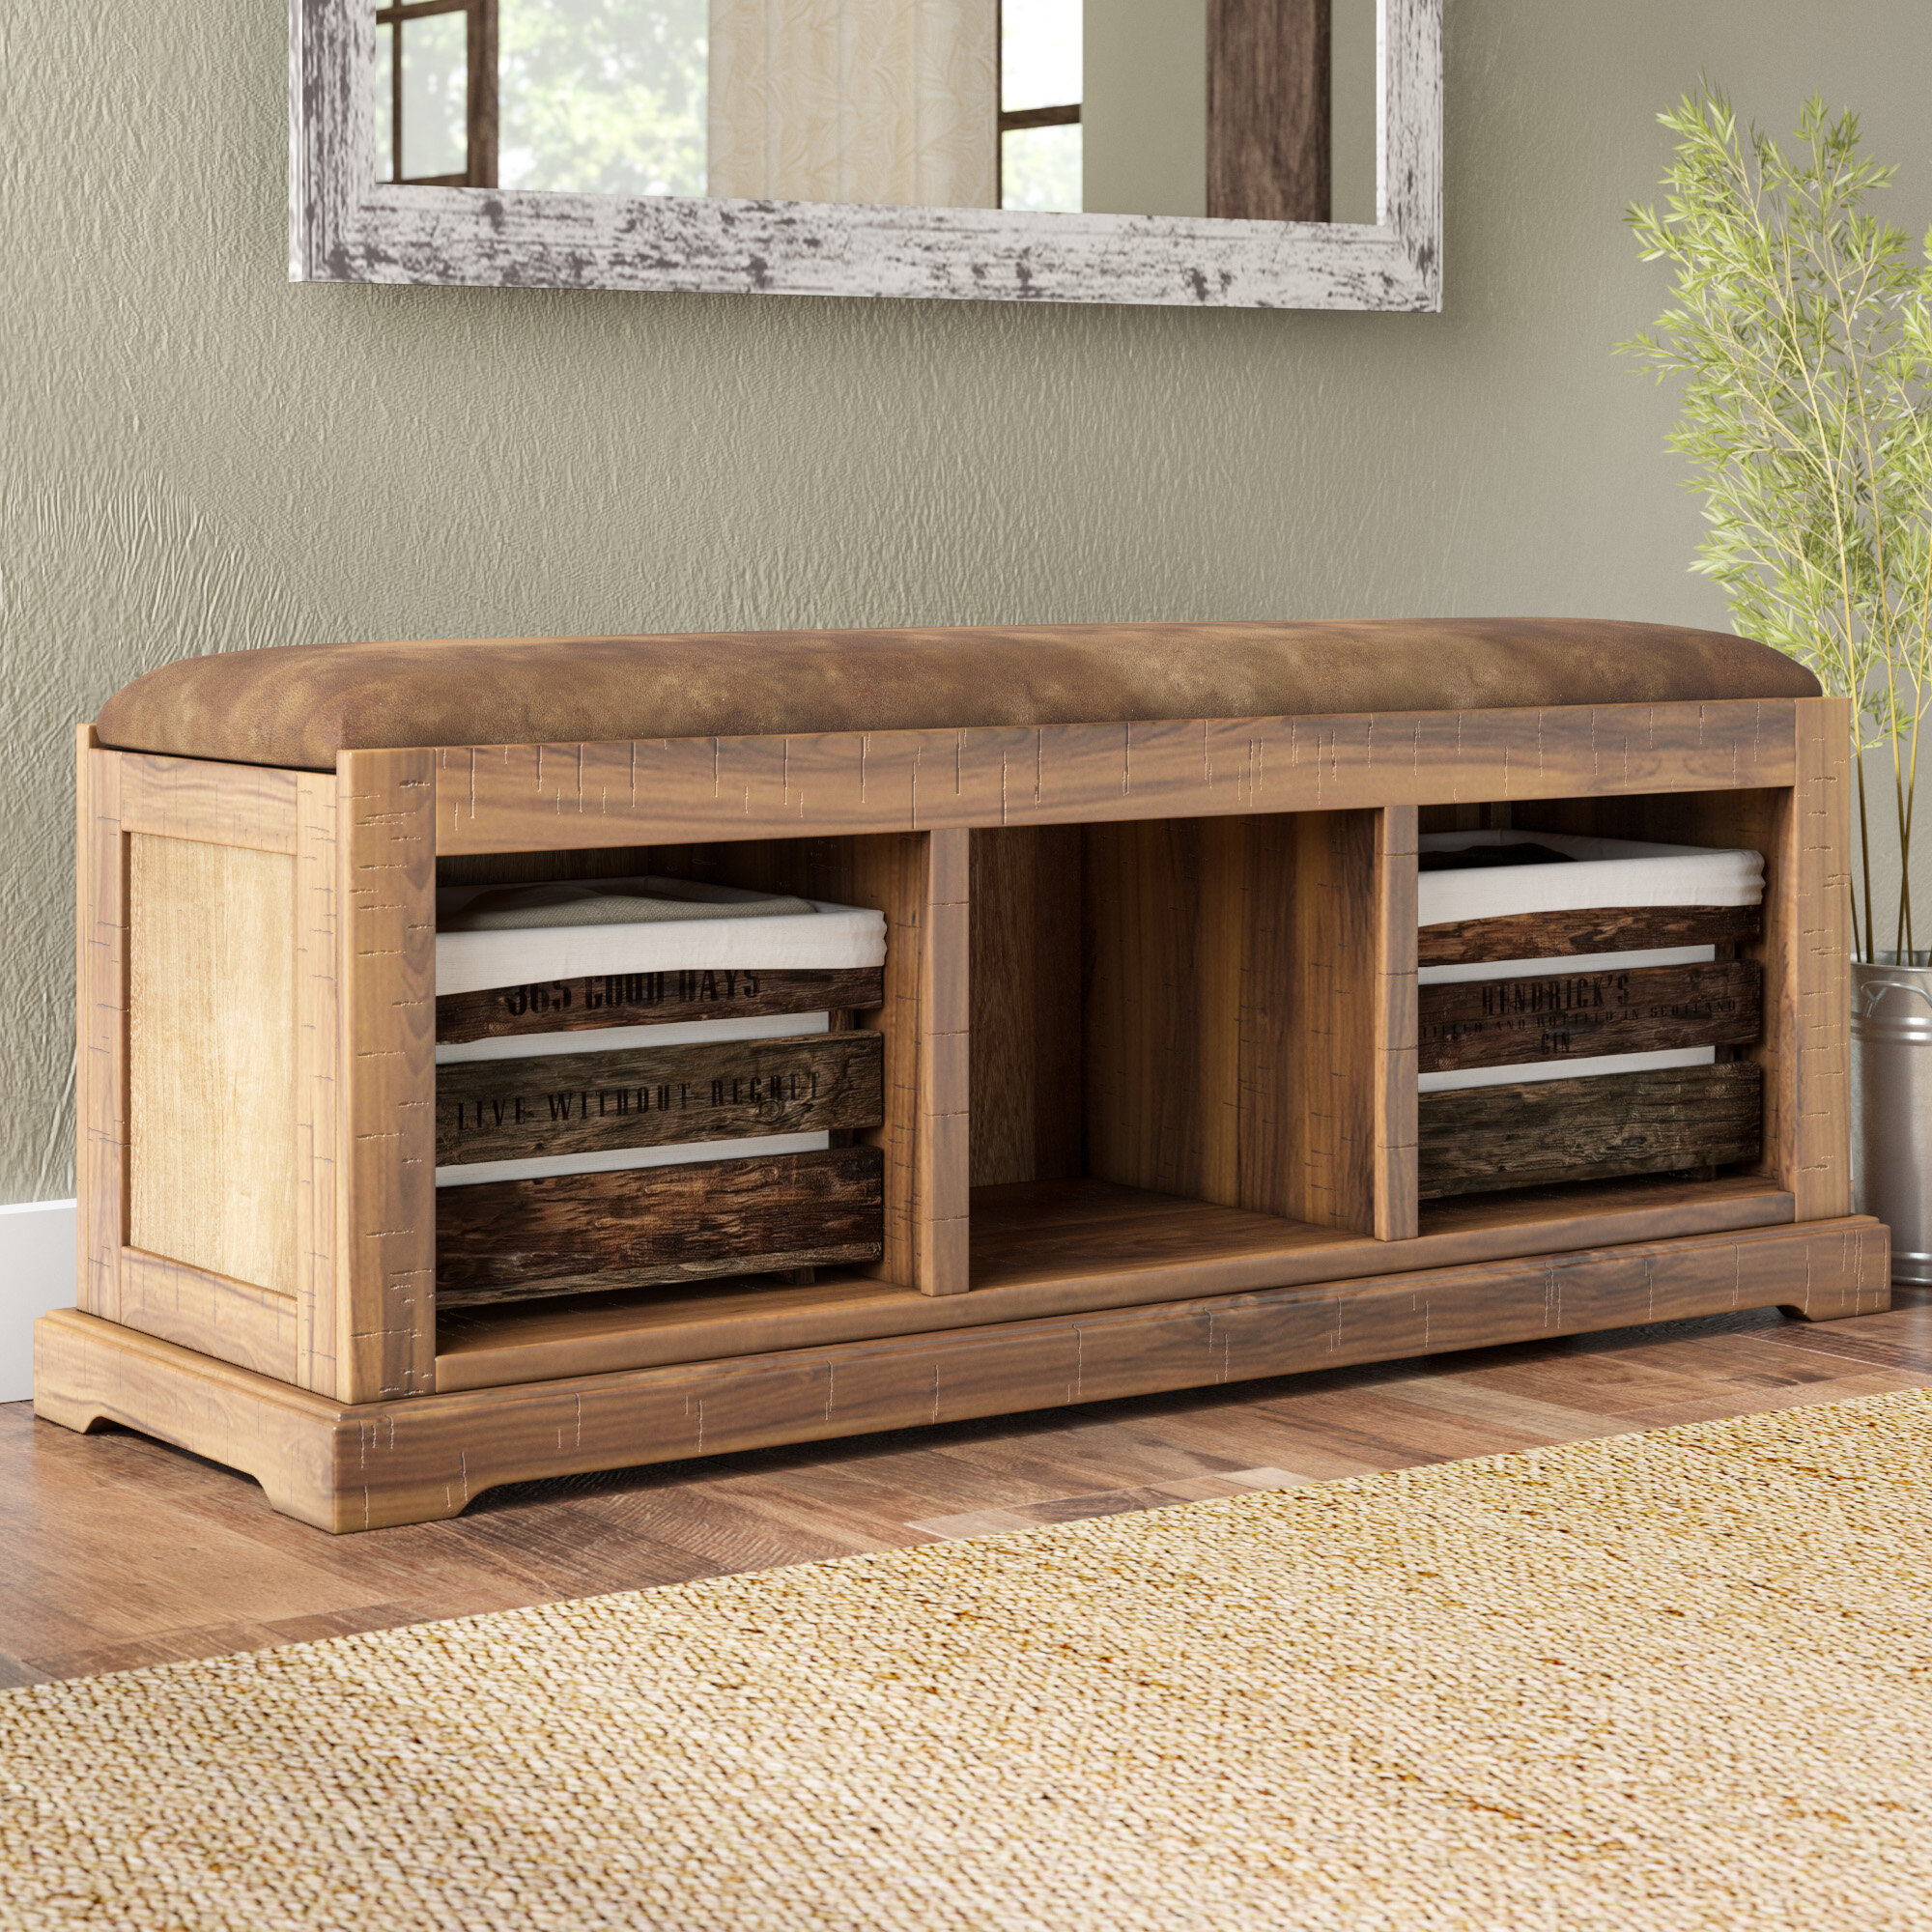 reviews wood uk wayfair ashcroft with bench all furniture co pdp home storage hallway hall